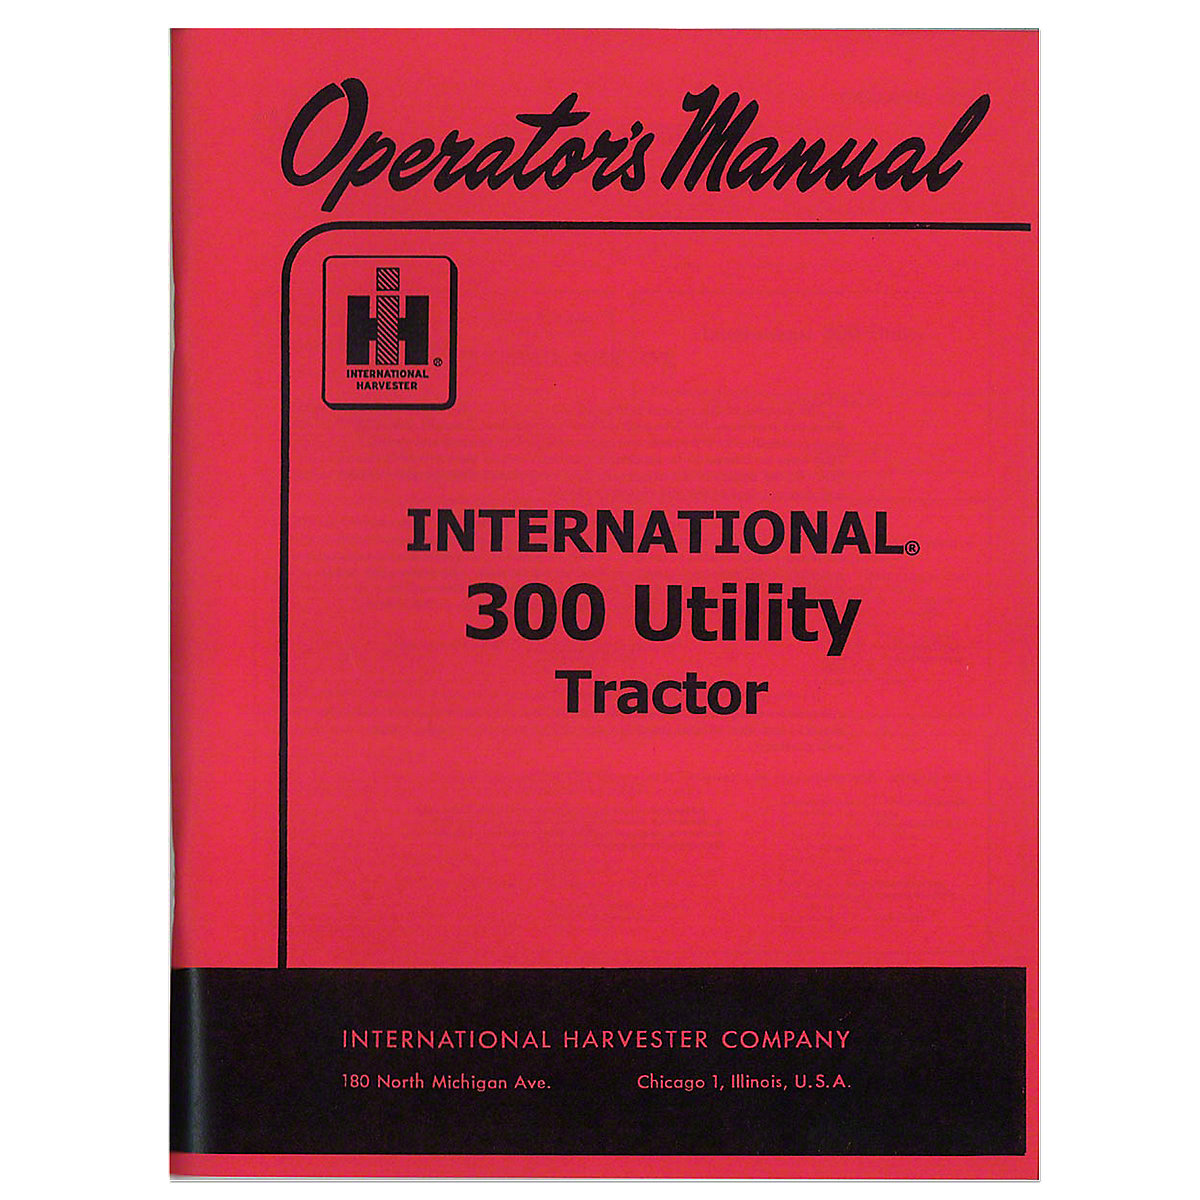 REP116 Operators Manual: IH 300 Utility